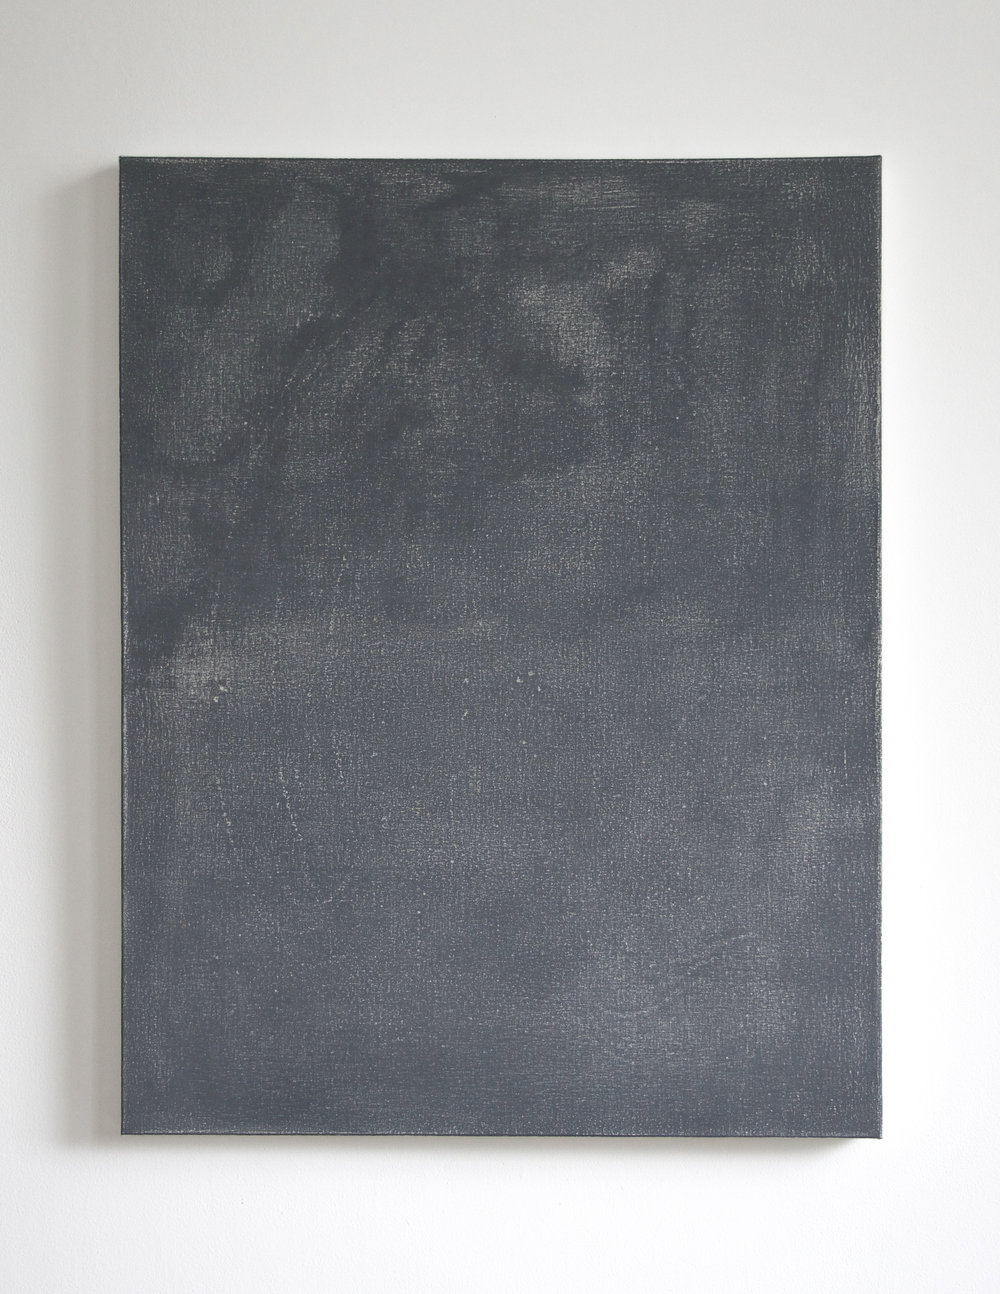 GRIS, 32%22x28%22, acrylic on canvas, 2017.jpg